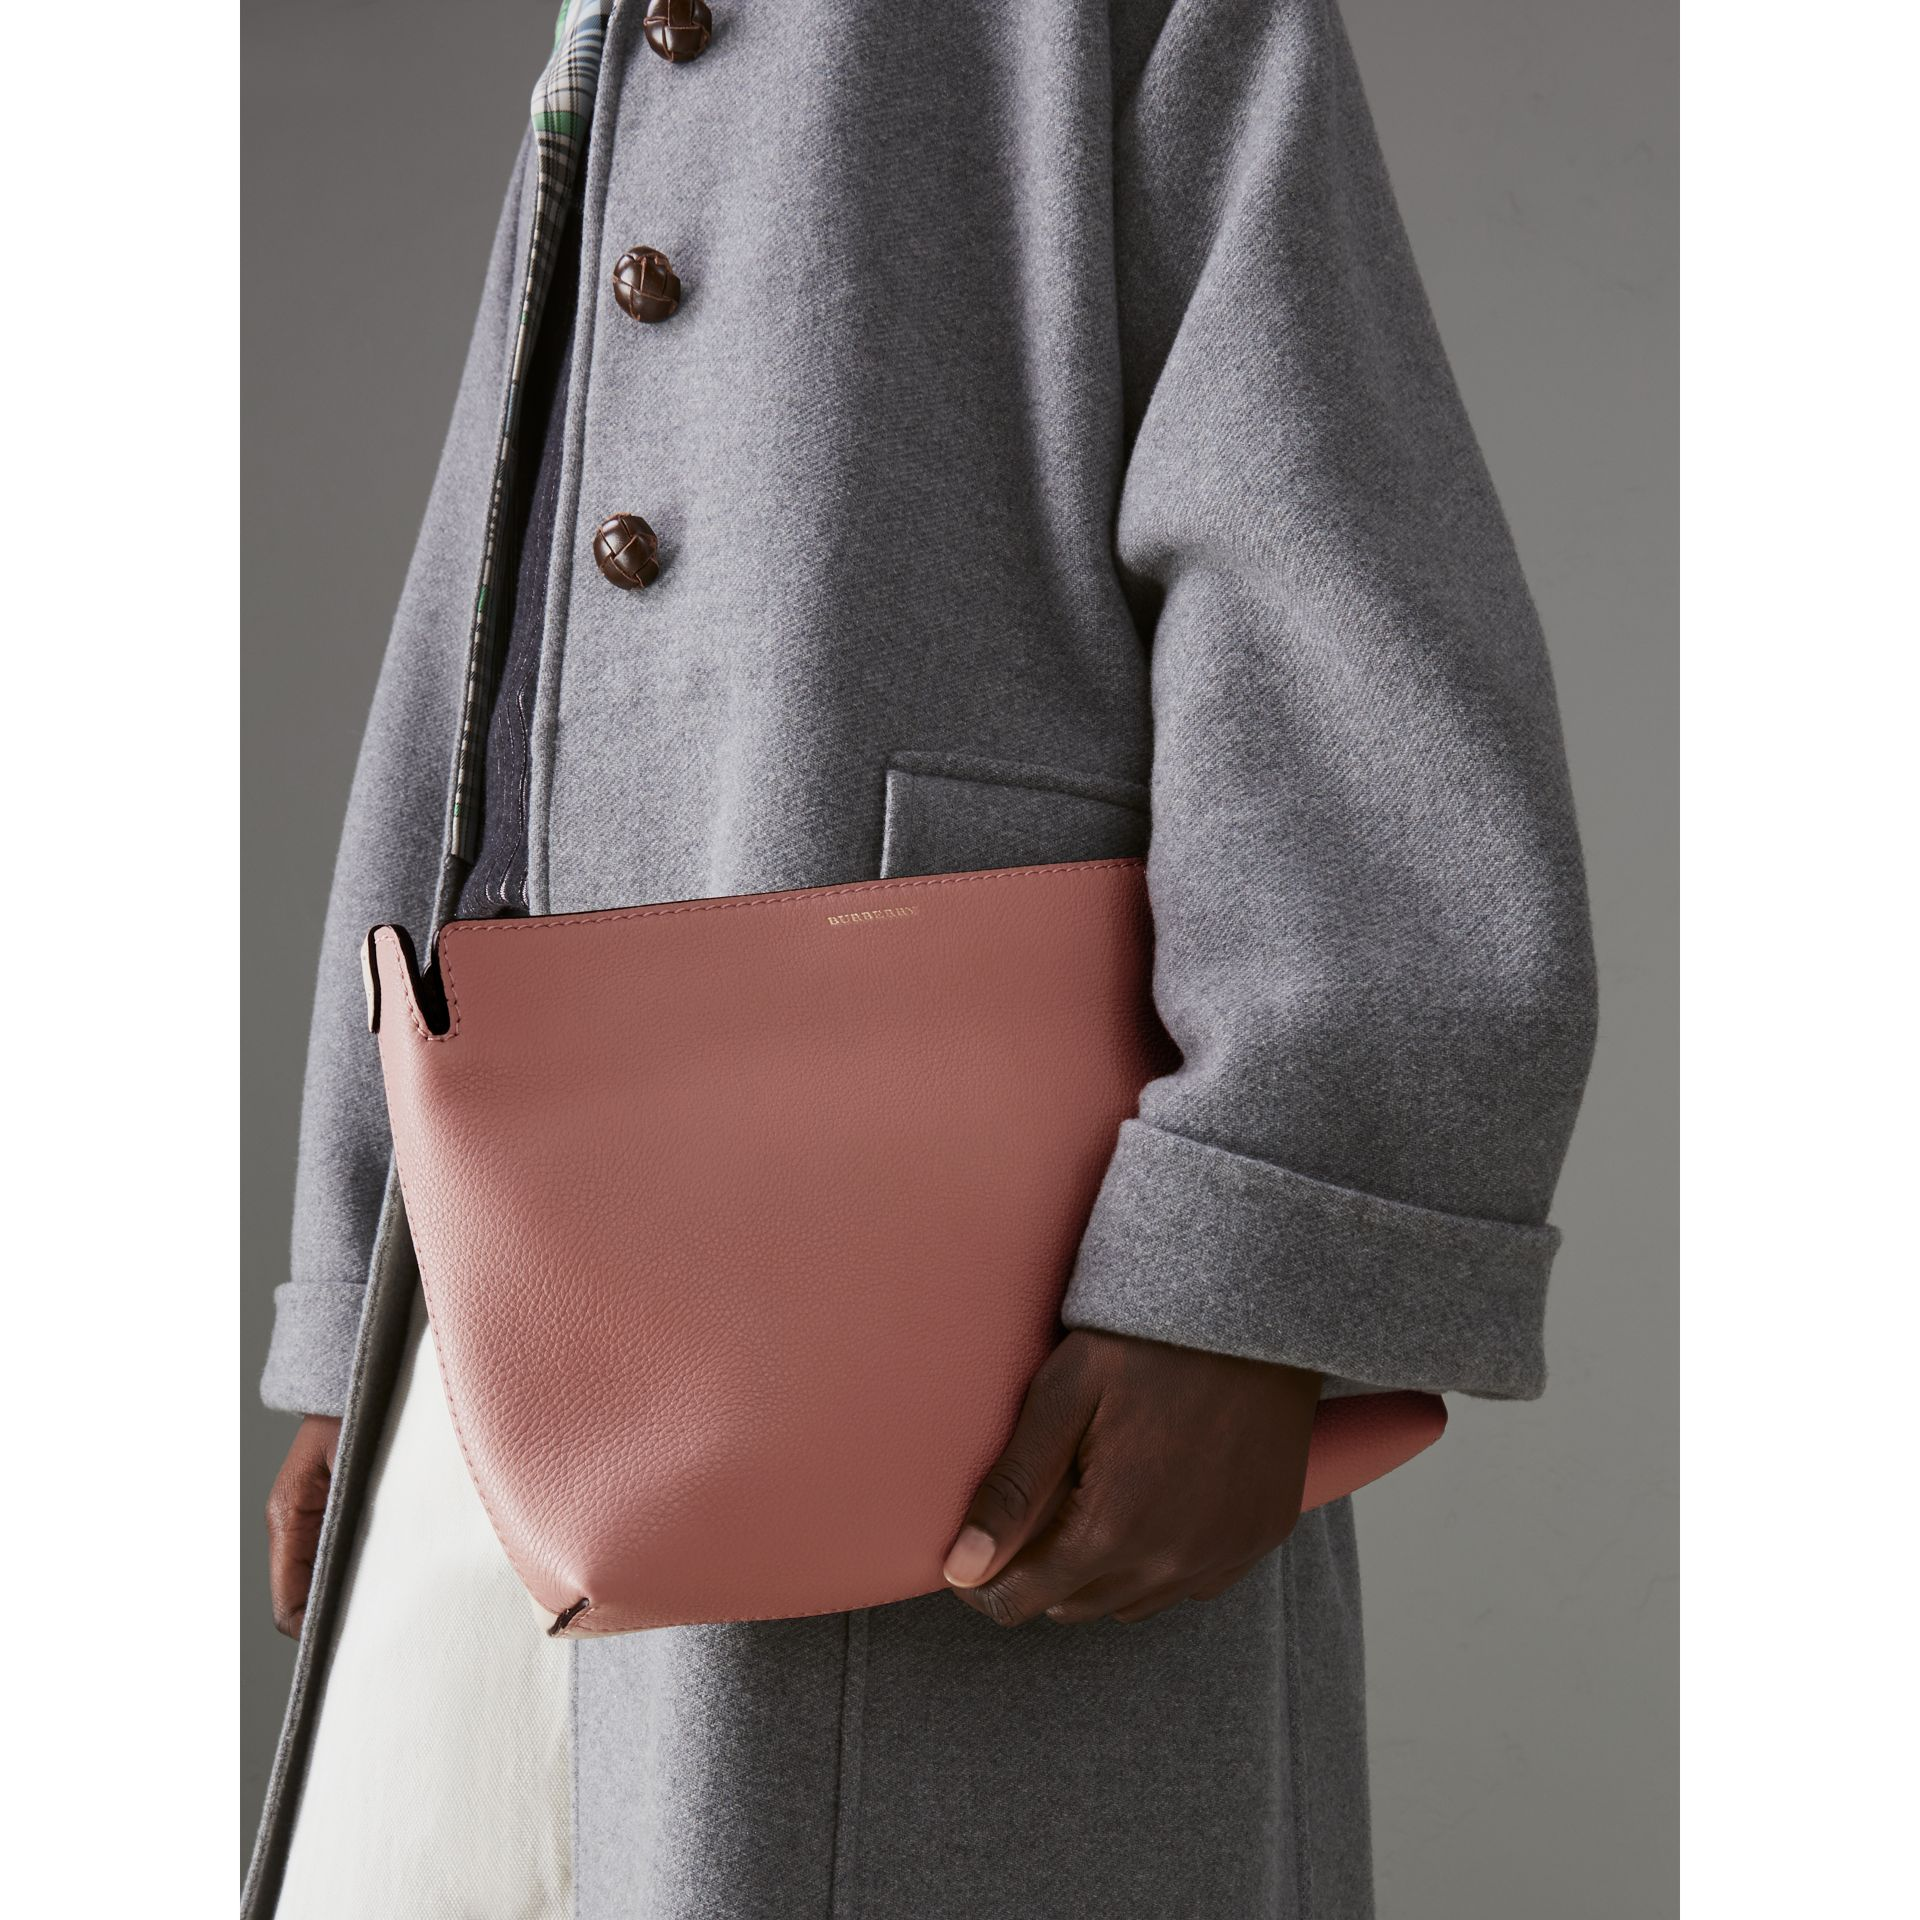 Medium Tri-tone Leather Clutch in Dusty Rose/limestone | Burberry Australia - gallery image 3